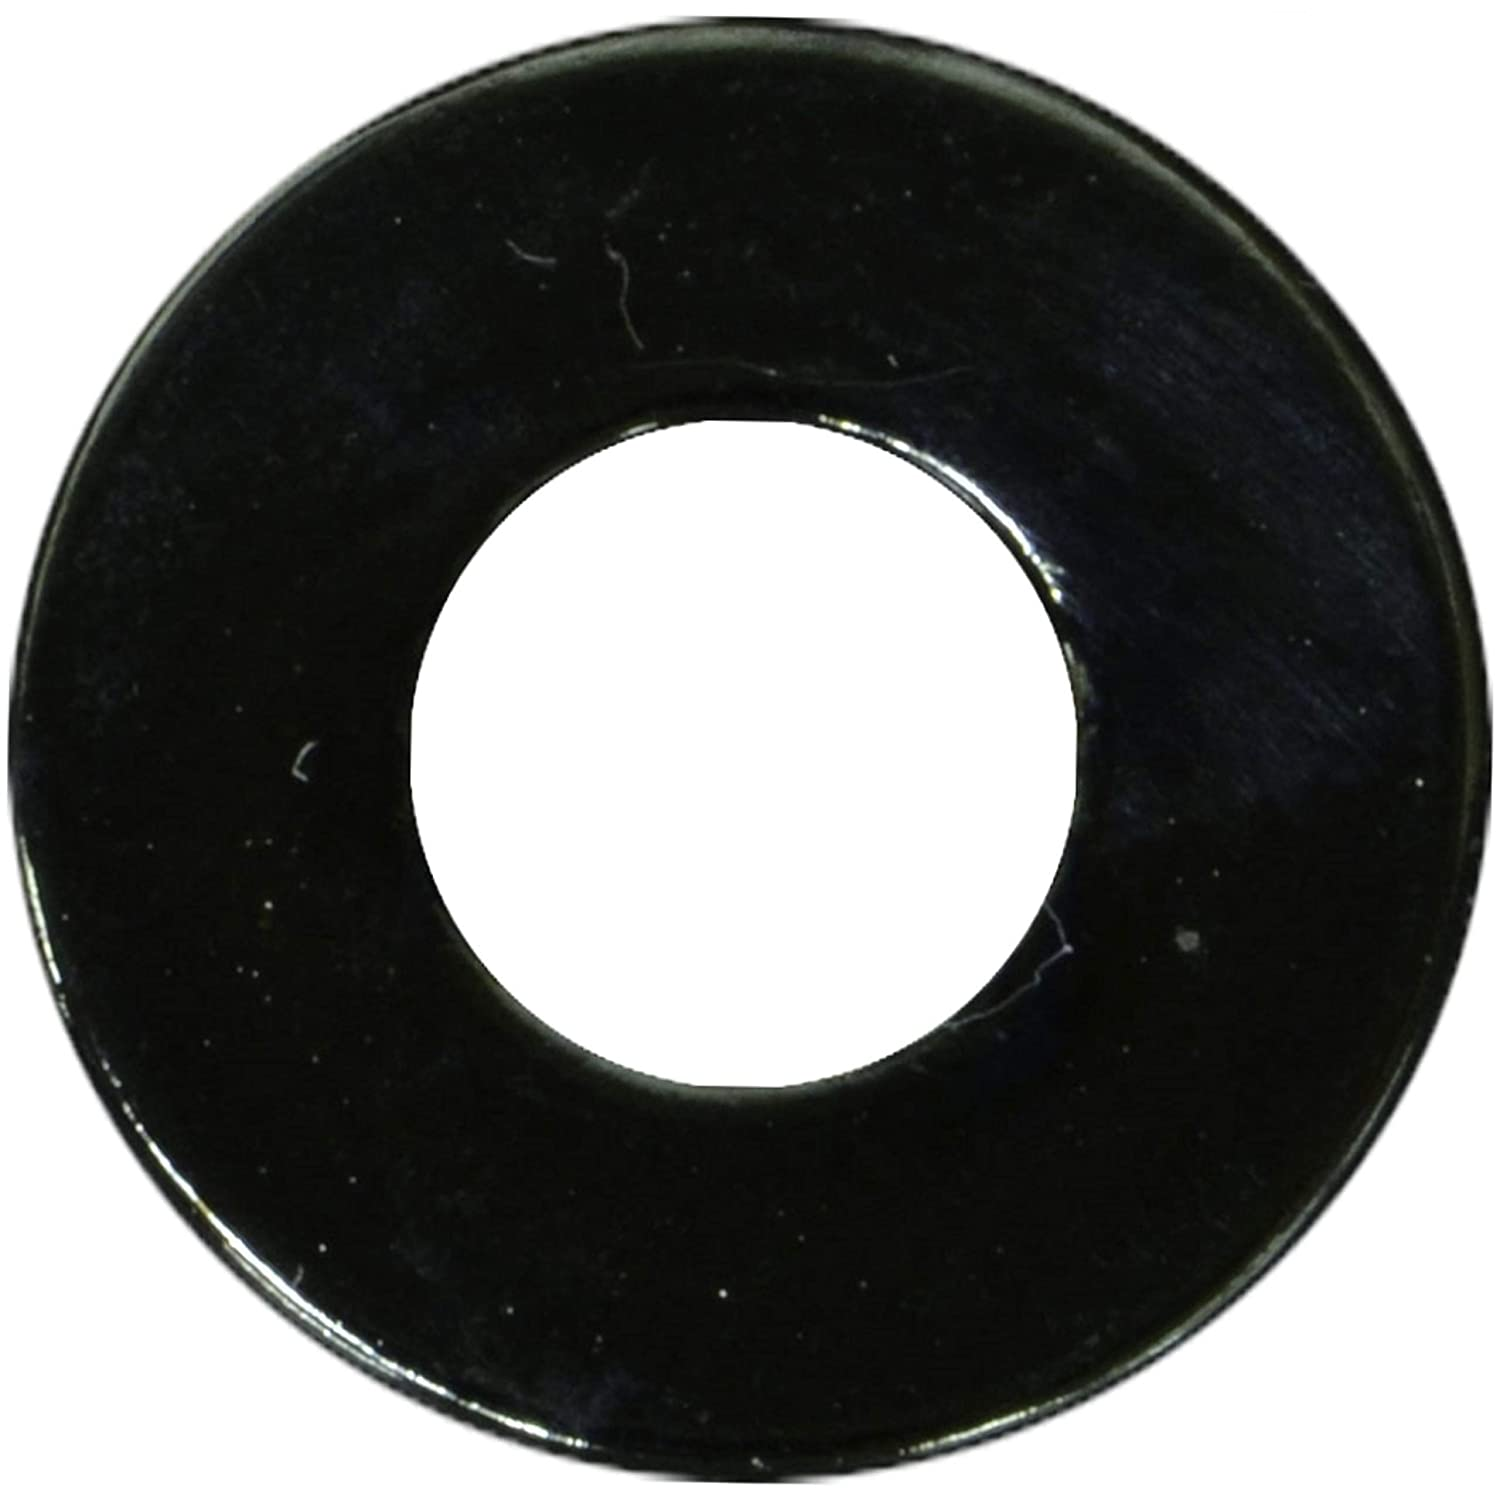 Piece-15 Midwest Fastener Corp Hard-to-Find Fastener 014973436254 SAE Flat Washers 10